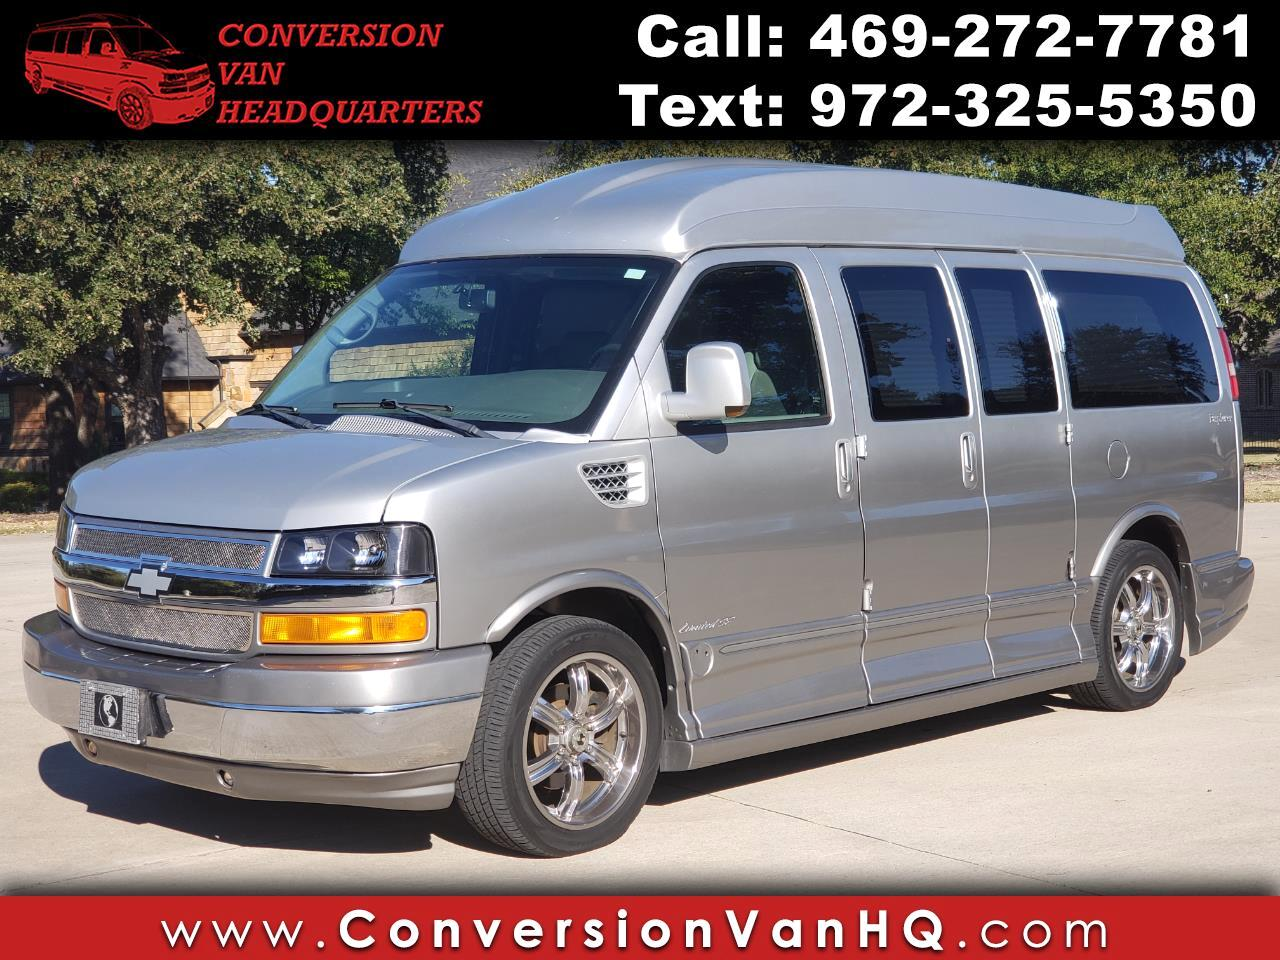 2010 Chevrolet Express Express 1500 Hightop Explorer Limited SE Conversio